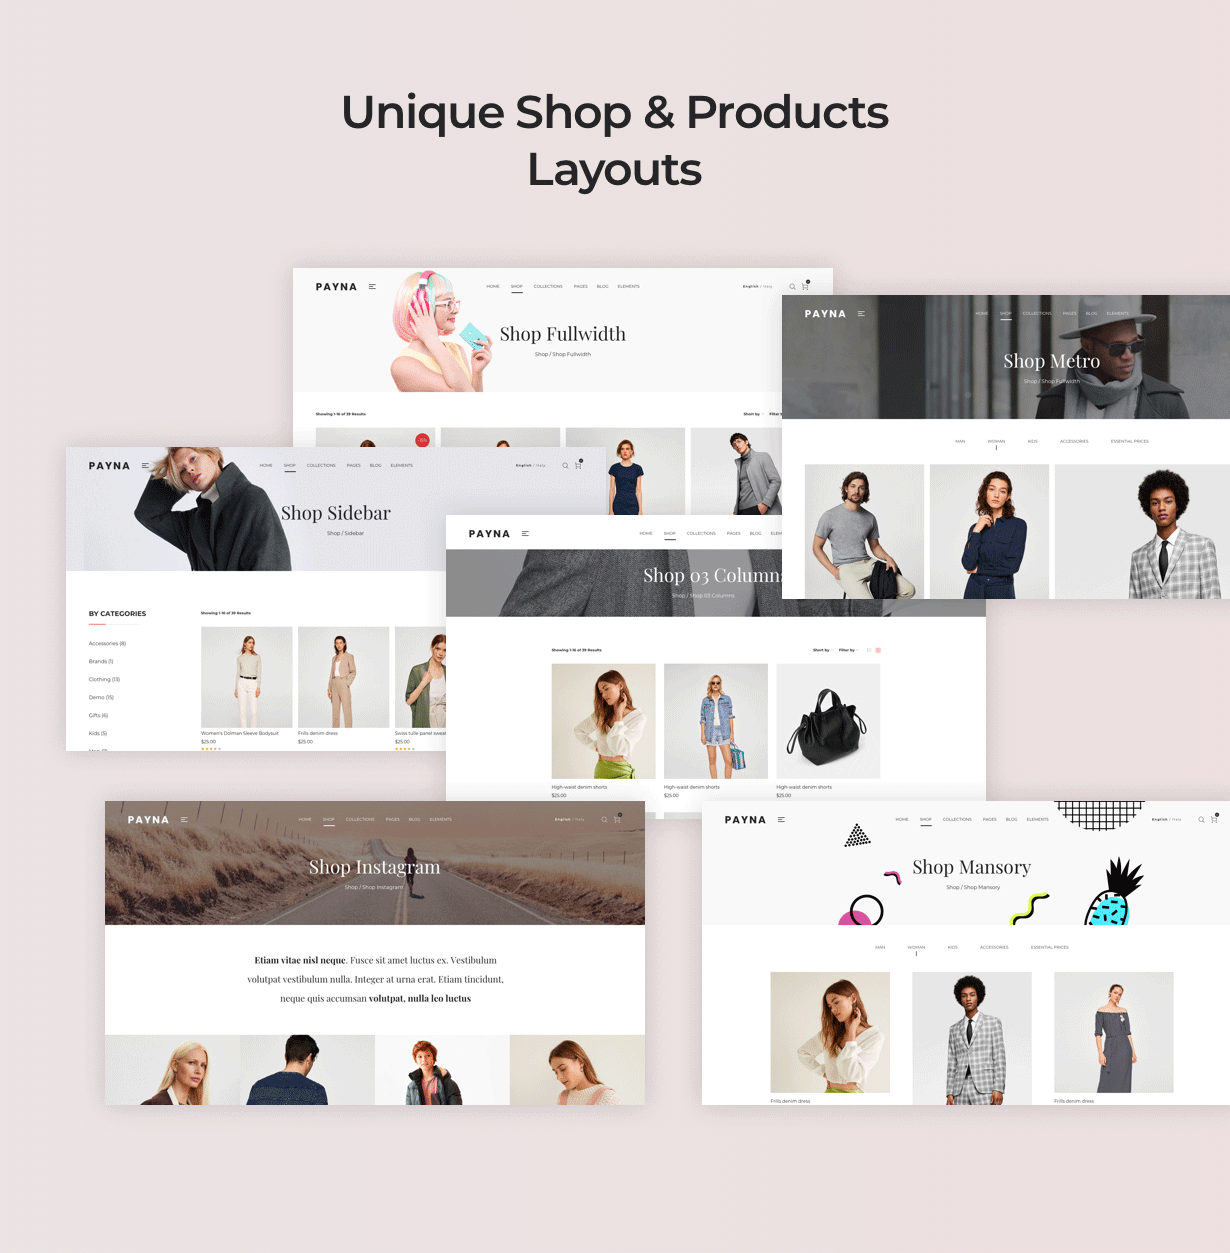 简约时装百货商场电子商城WordPress模板 Payna – Clean, Minimal WooCommerce Theme插图(4)